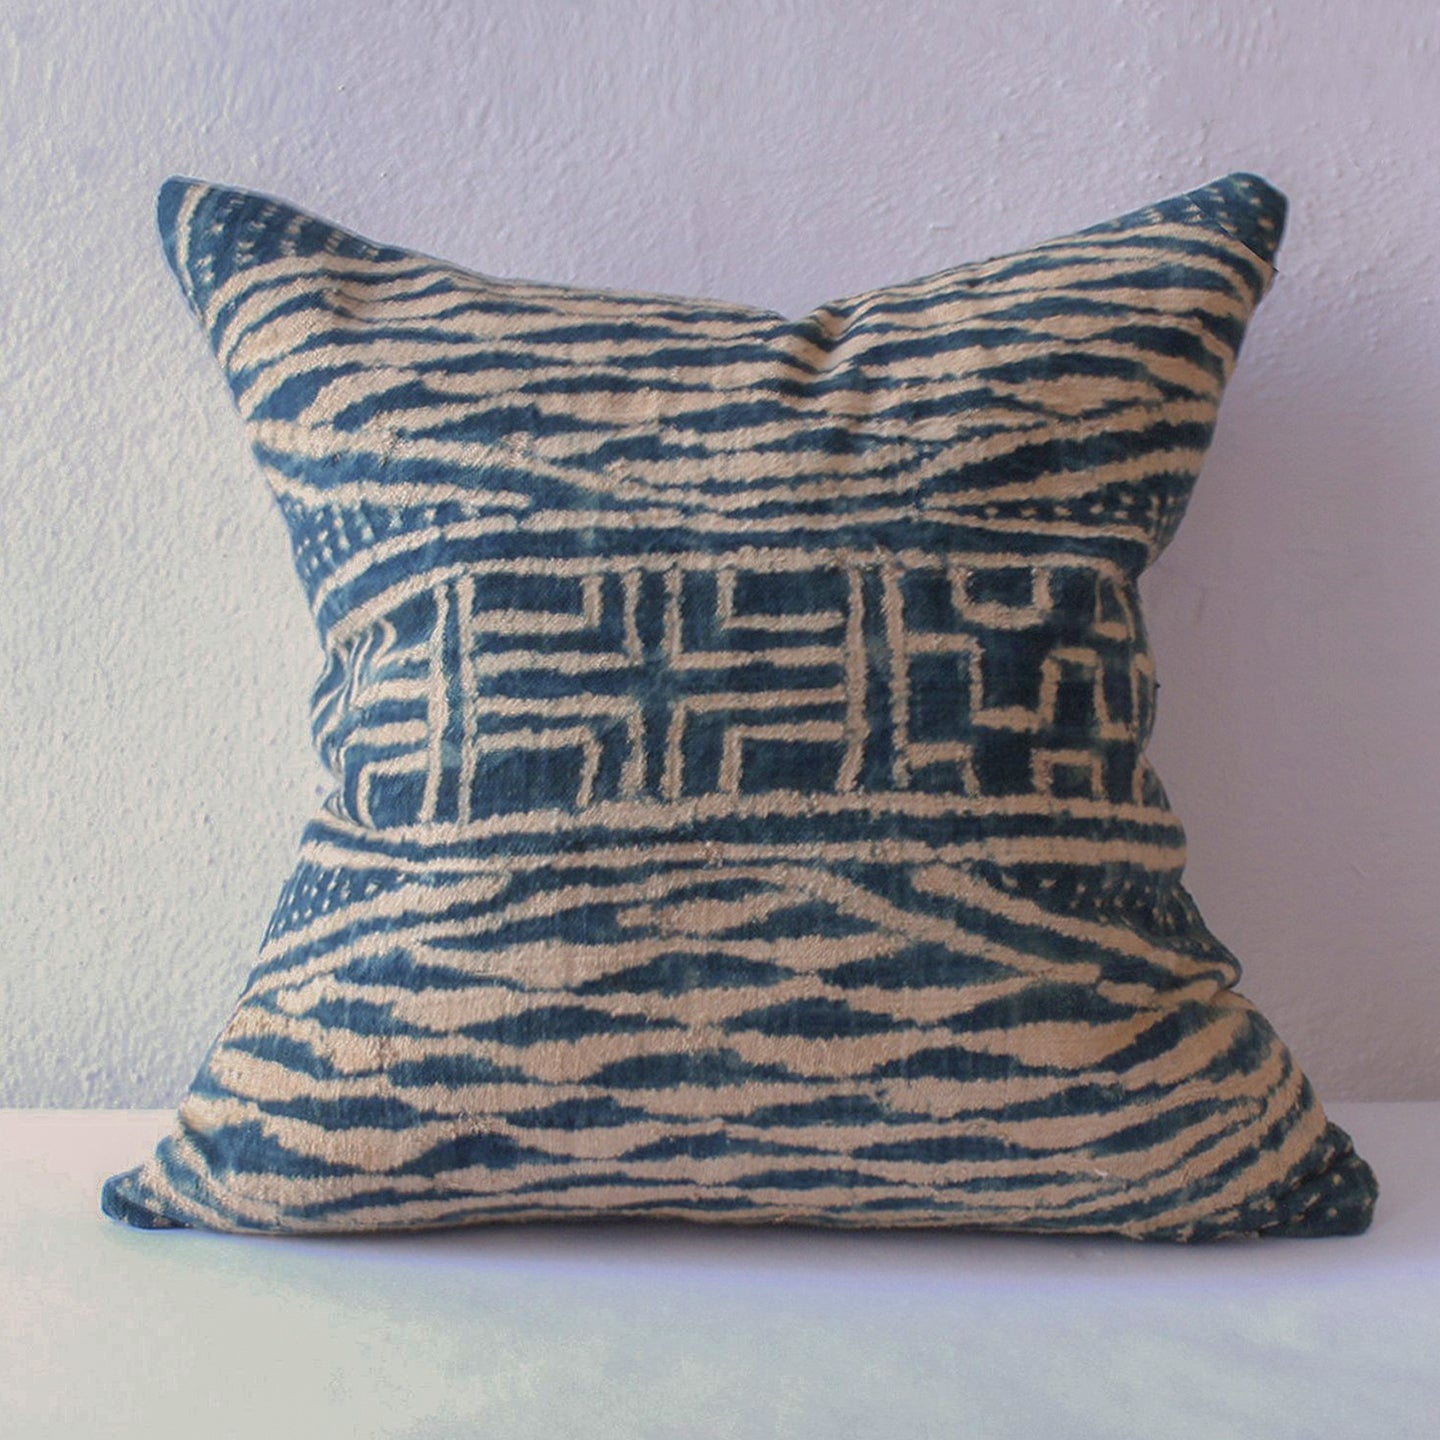 Indigo, Ndop Indigo Pillow